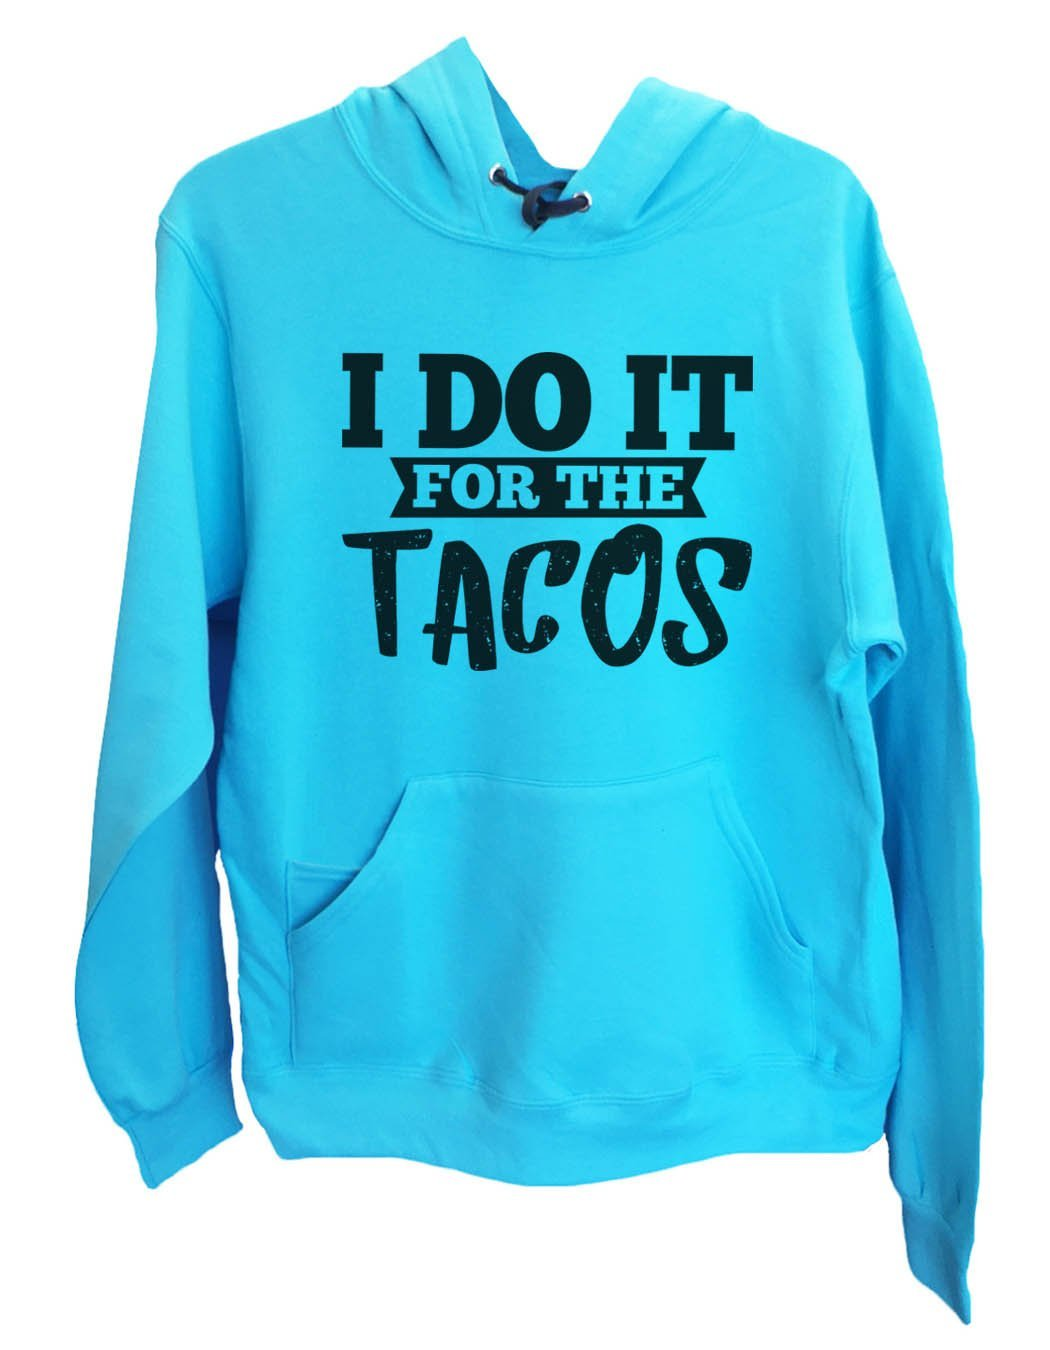 UNISEX HOODIE - I Do It For The Tacos - FUNNY MENS AND WOMENS HOODED SWEATSHIRTS - 2116 Funny Shirt Small / Turquoise